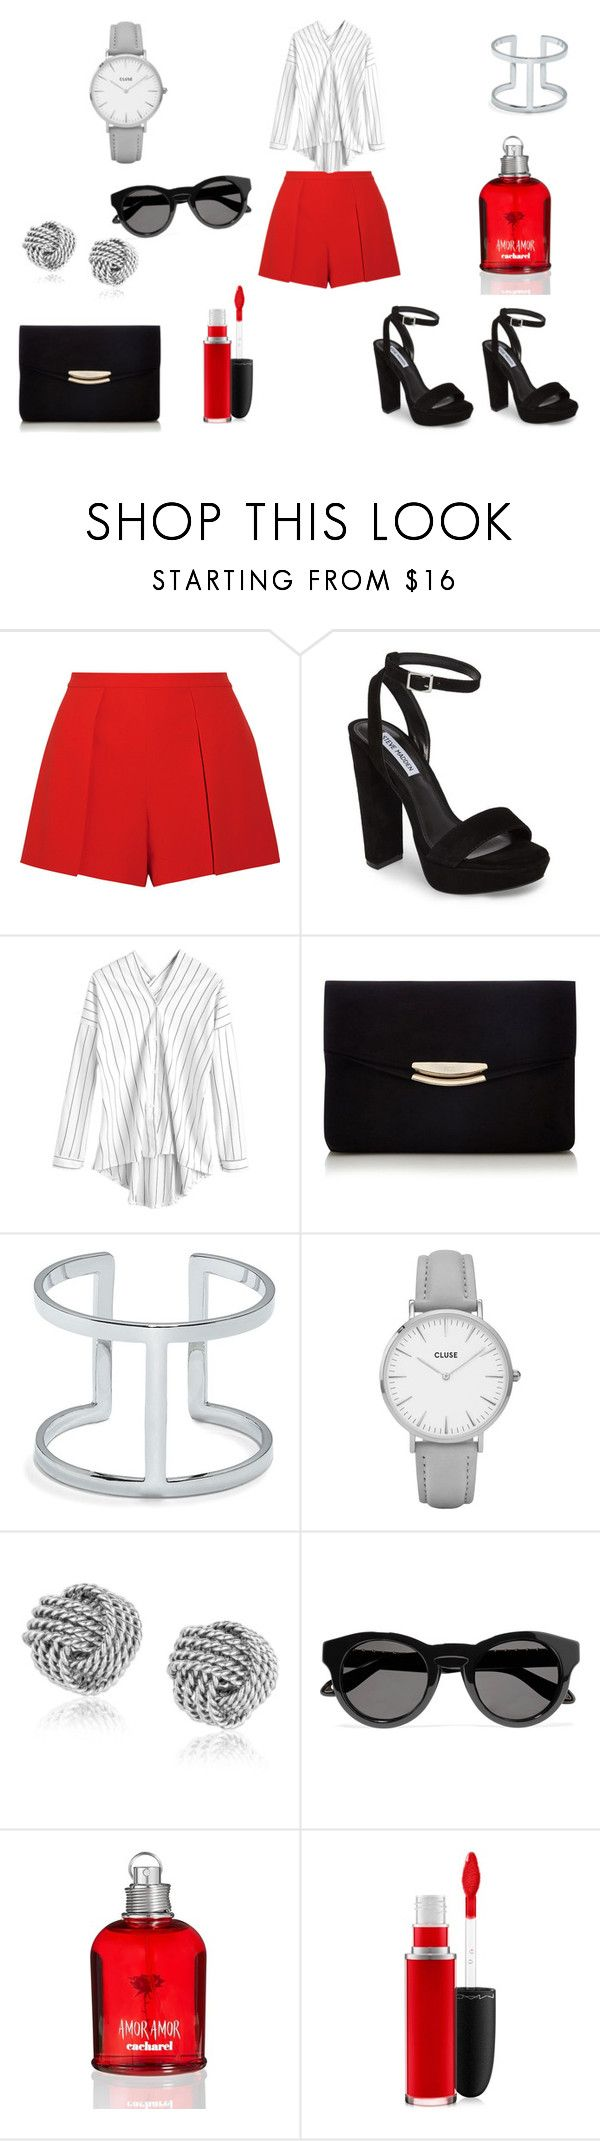 Amor Amor by evitapedraza on Polyvore featuring moda, Alice + Olivia, Steve Madden, CLUSE, Vince Camuto, Givenchy, MAC Cosmetics and Cacharel